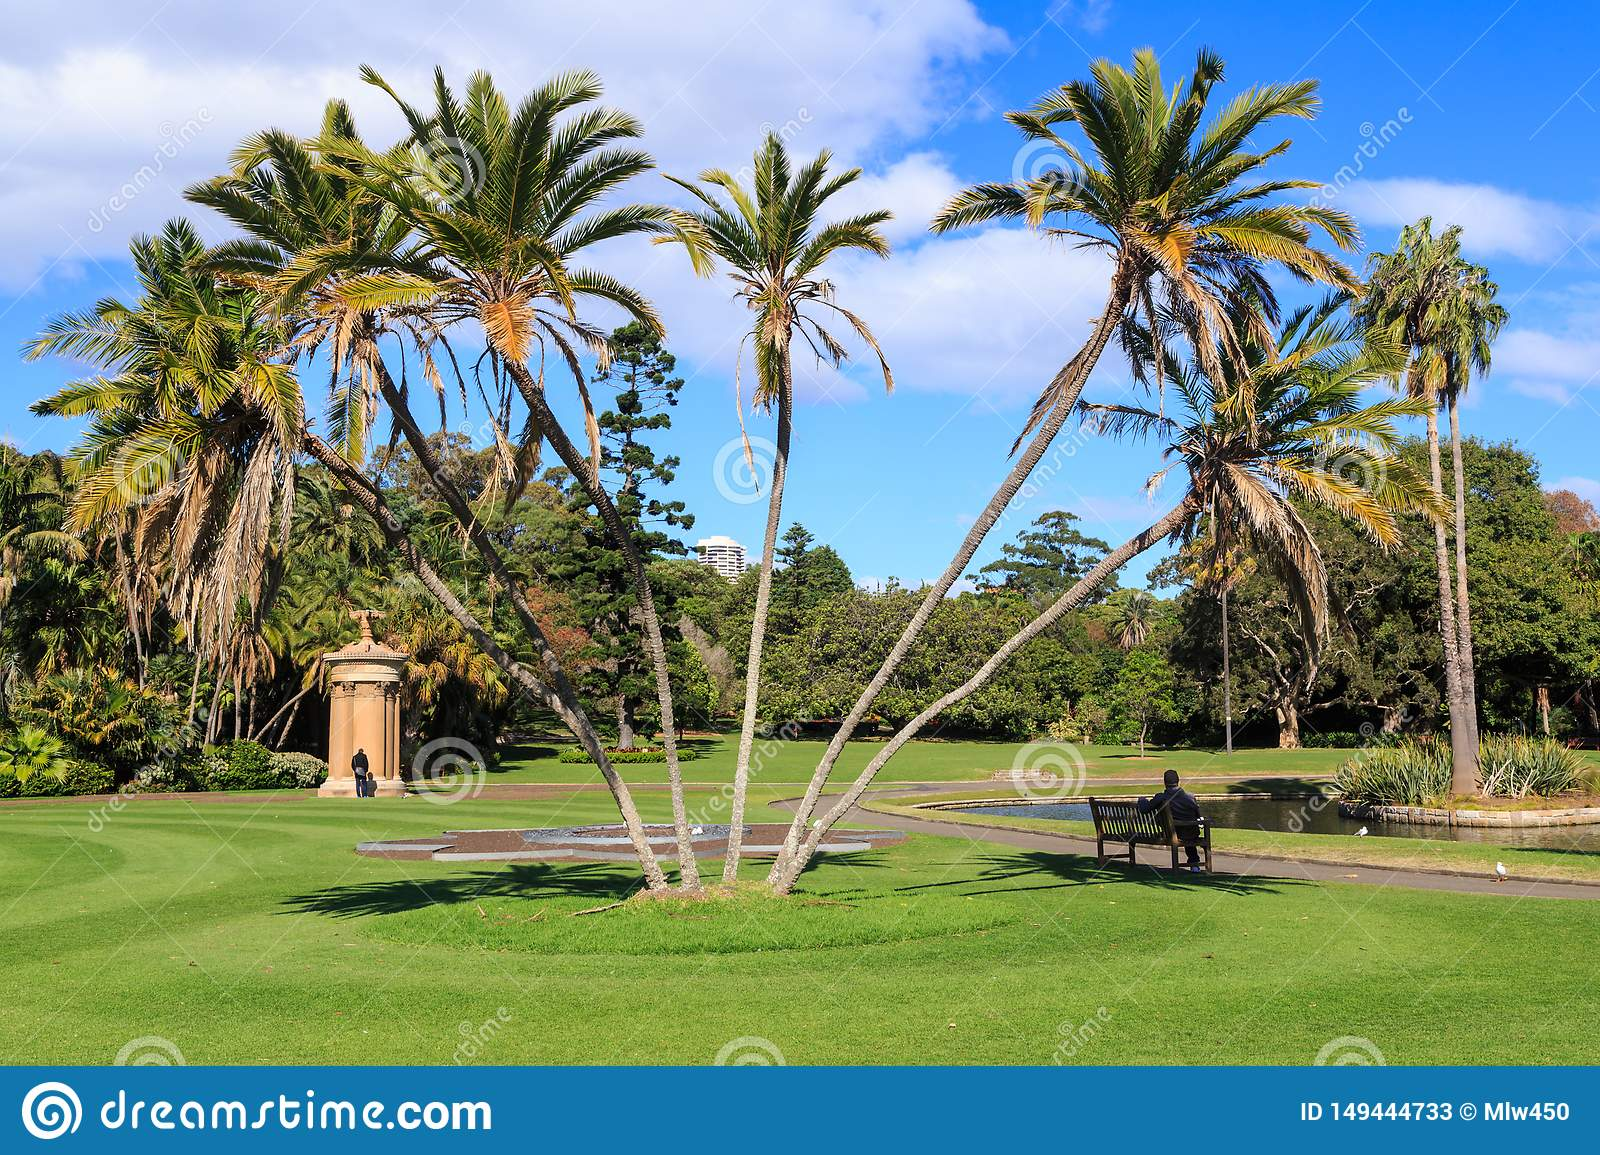 Palm Trees In Royal Botanic Garden Sydney Australia Stock Image